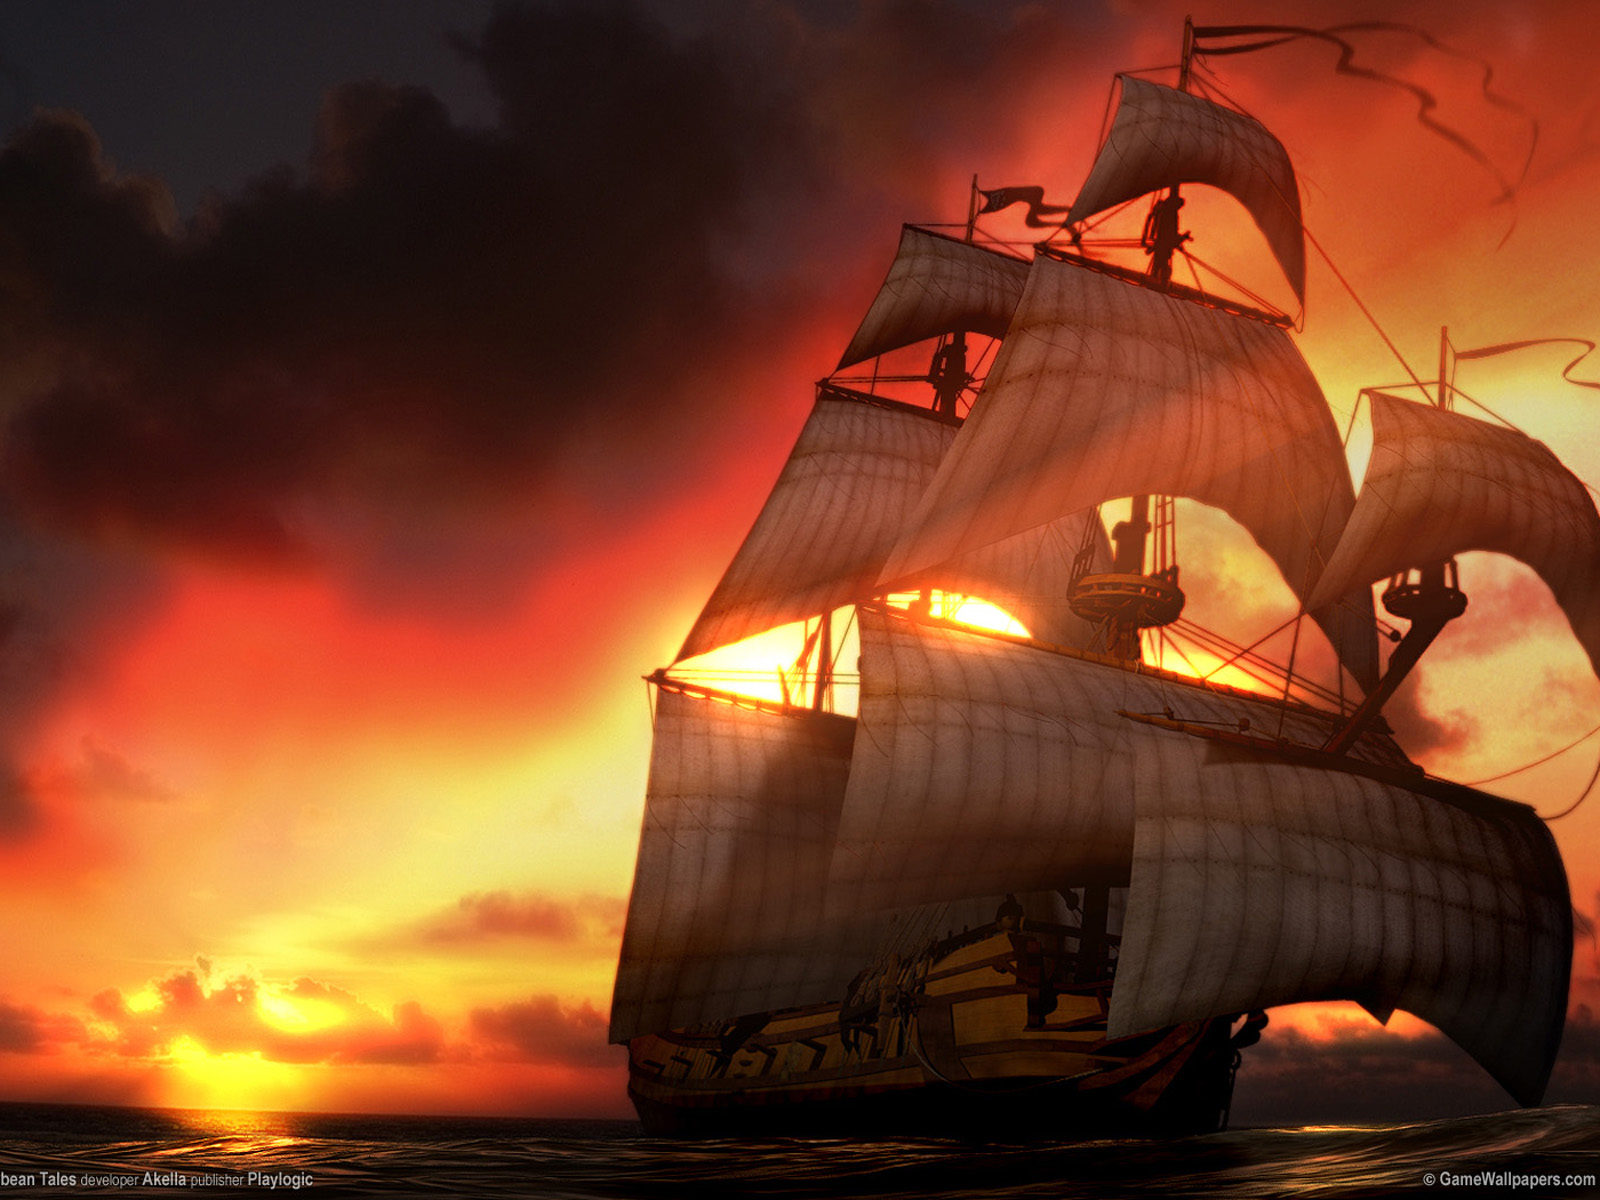 New Hd Wallpapers For Pc Free Download Pirate Ship Desktop Wallpaperwallpaper Pirates Caribbean